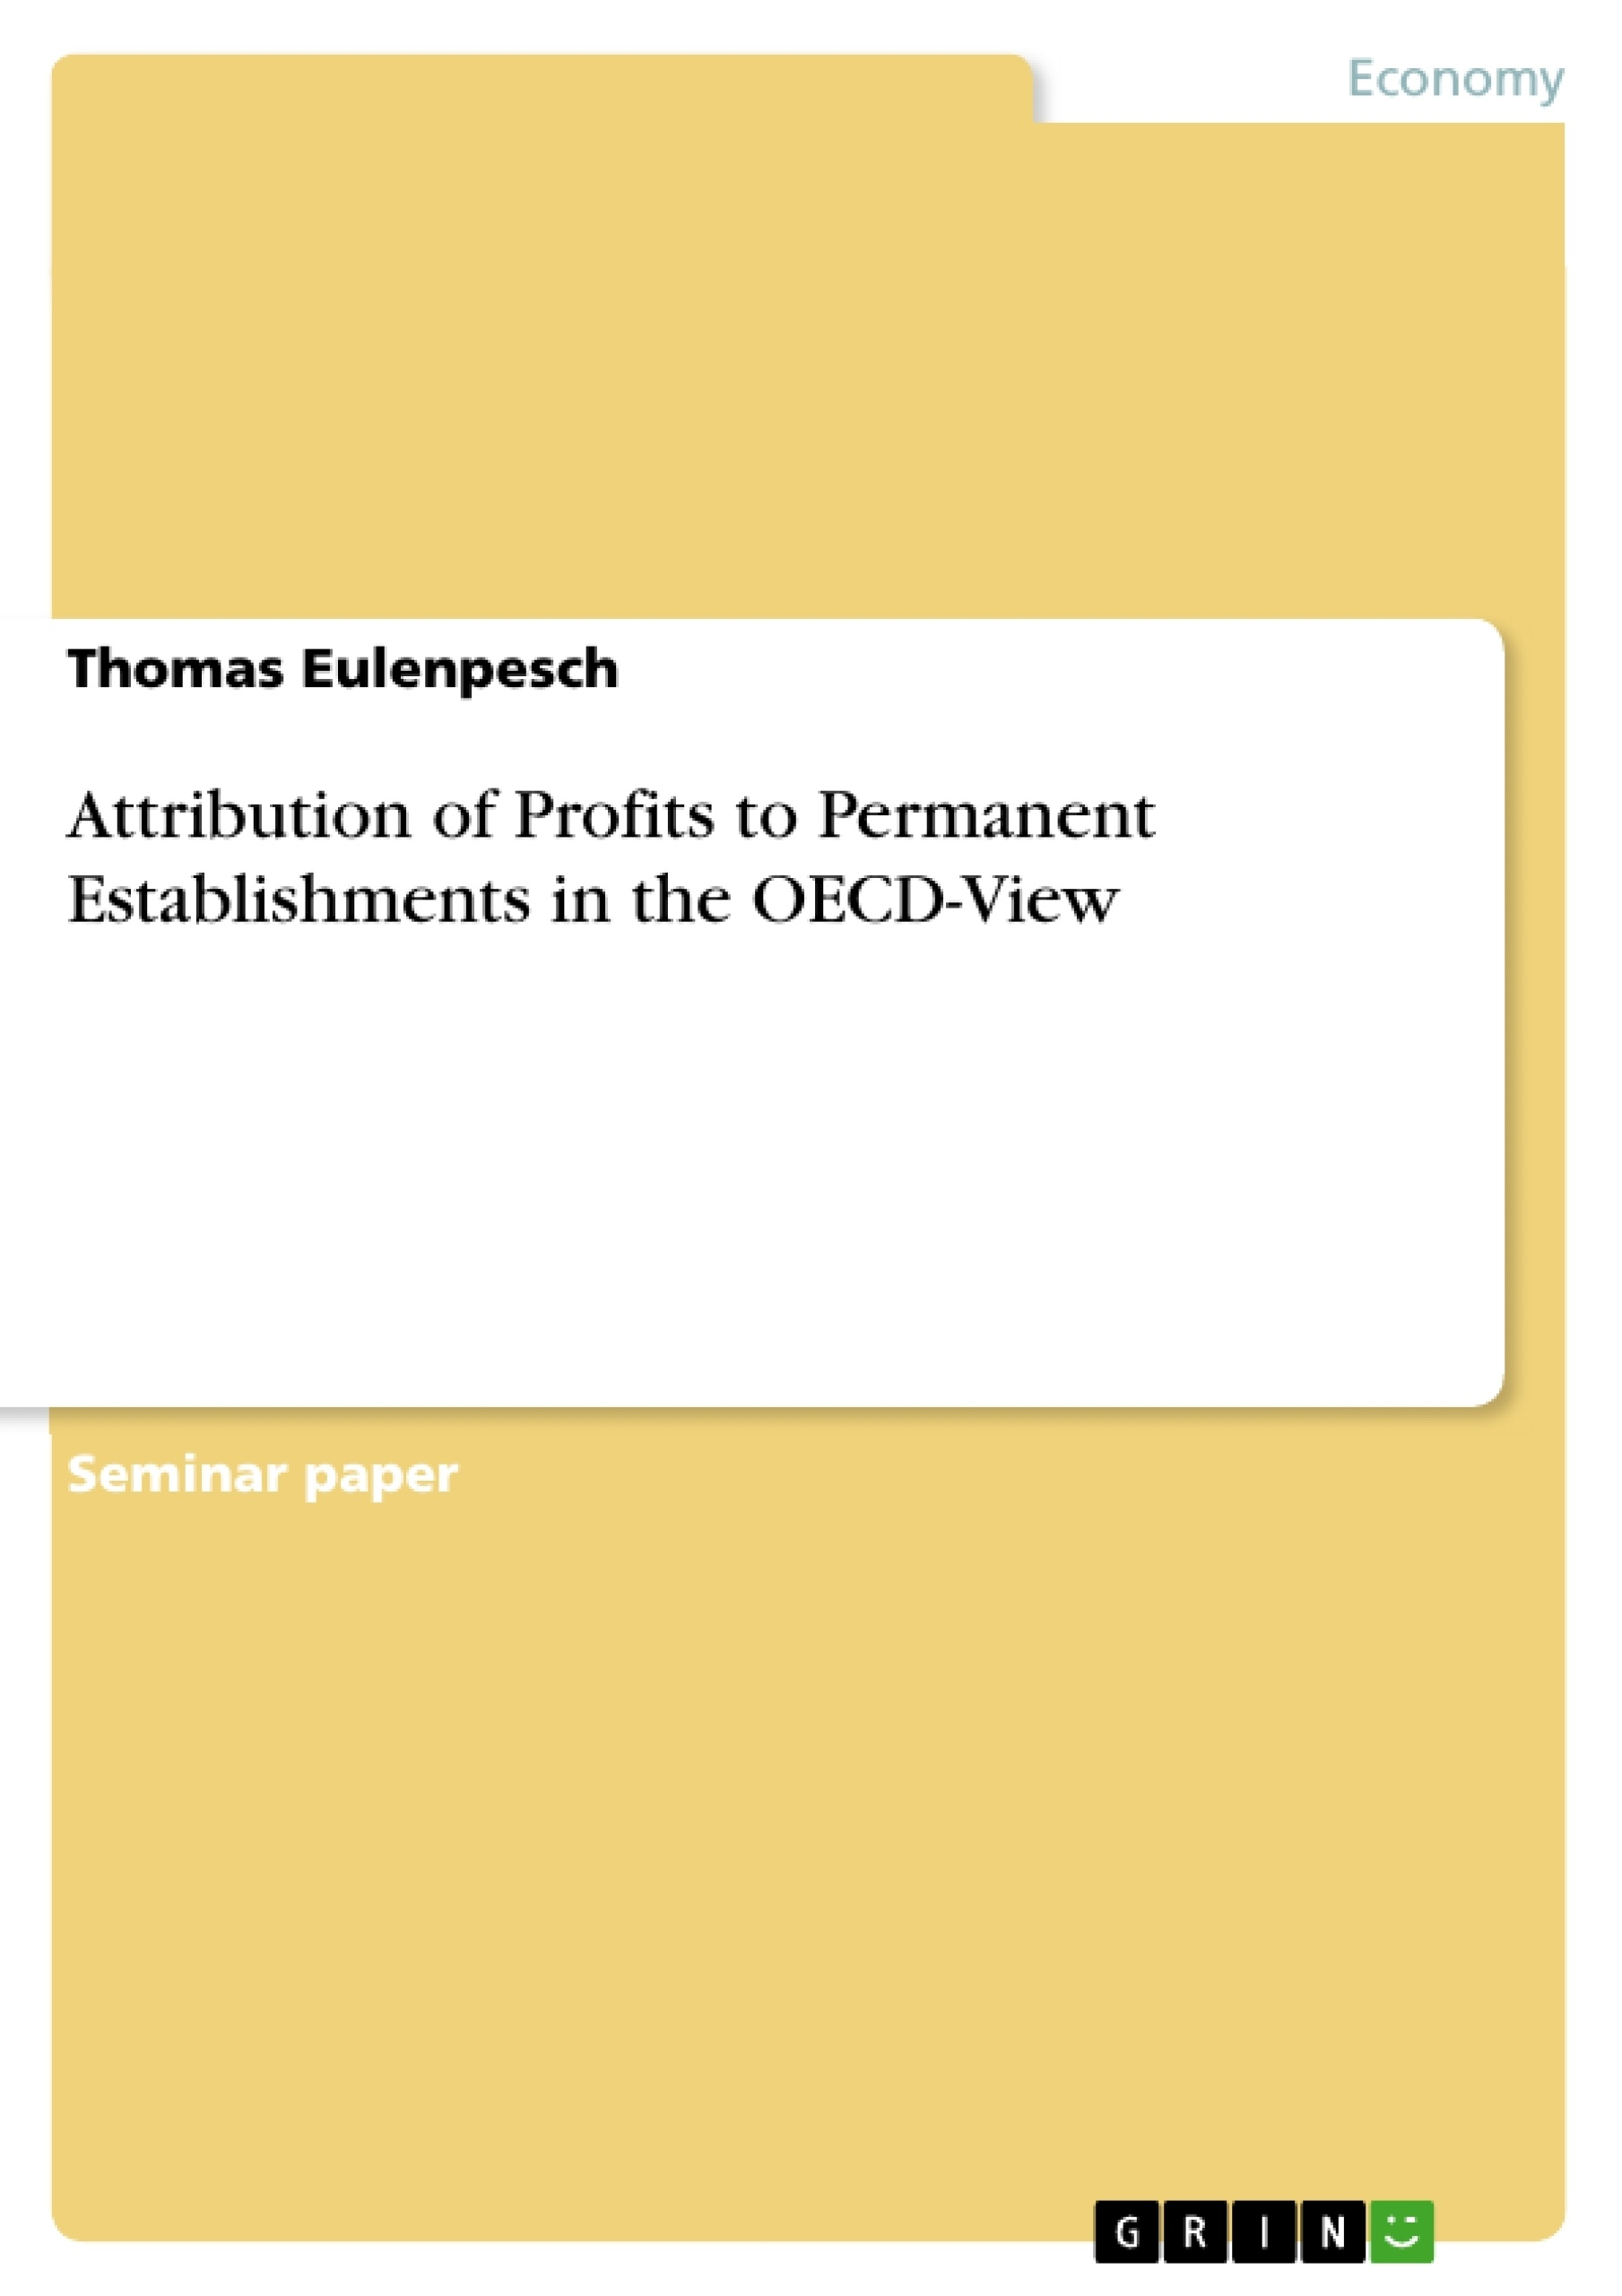 Title: Attribution of Profits to Permanent Establishments in the OECD-View